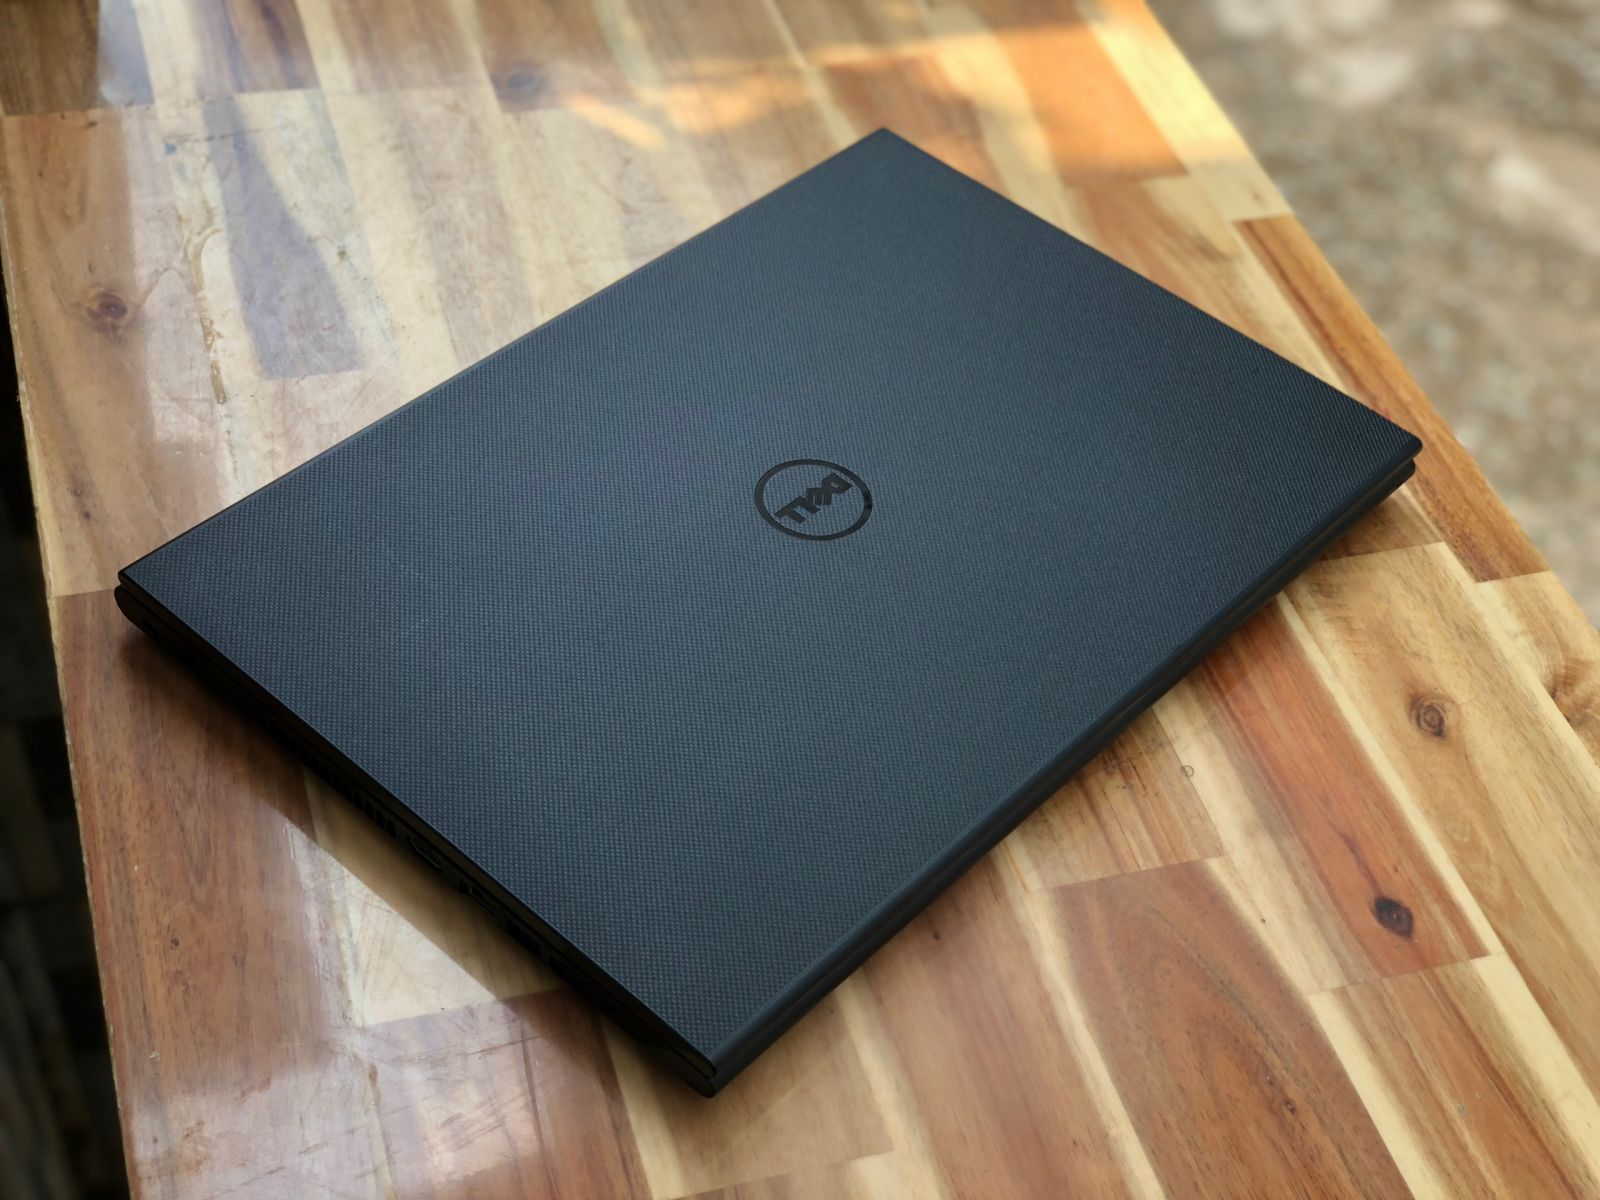 Dell Inspiron 3542 (Core i7 4510U RAM 4GB HDD 500GB VGA GT820 15.6 inch HD)